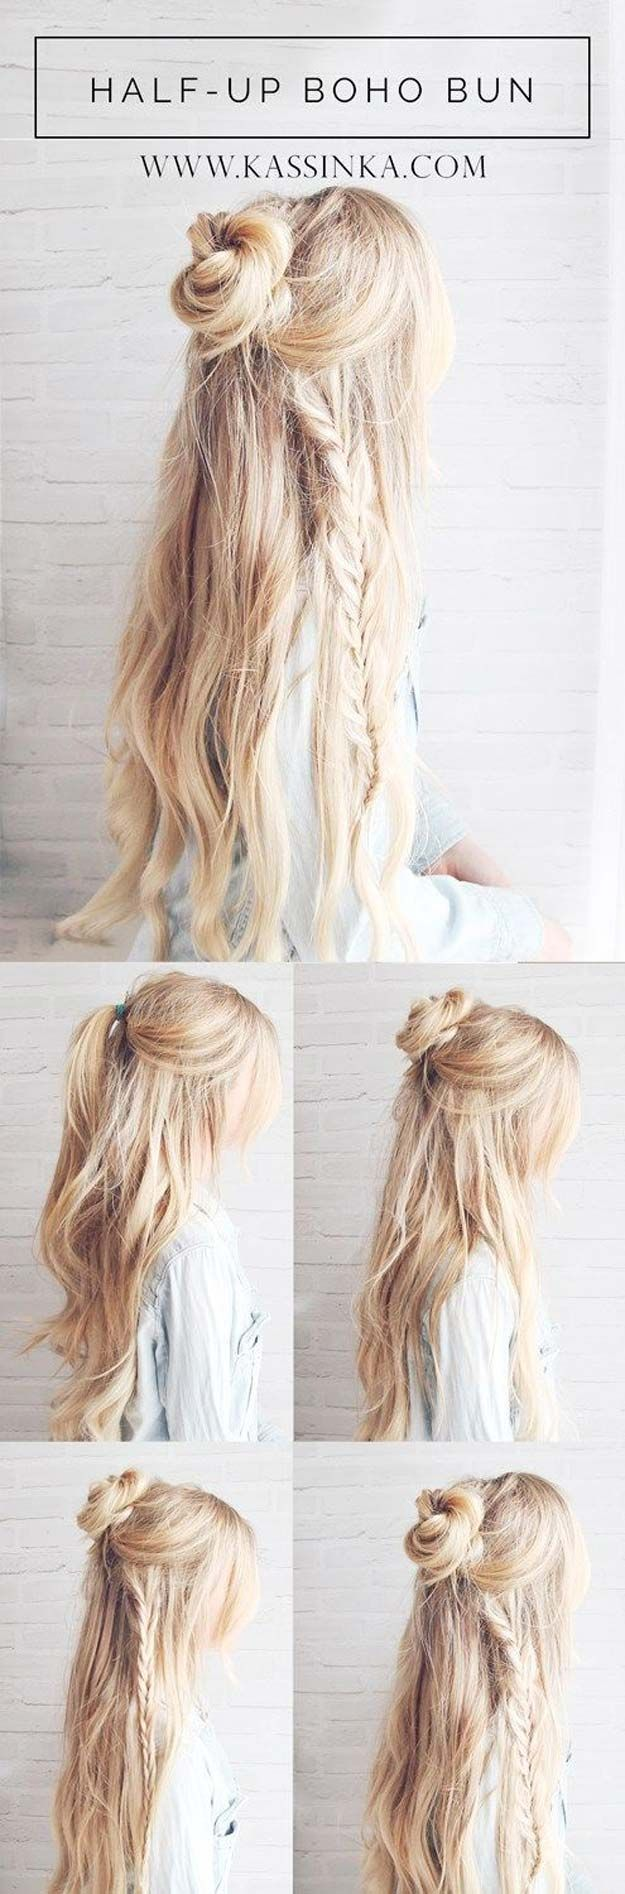 21 best Long hairstyles images on Pinterest | Hair tutorials ...